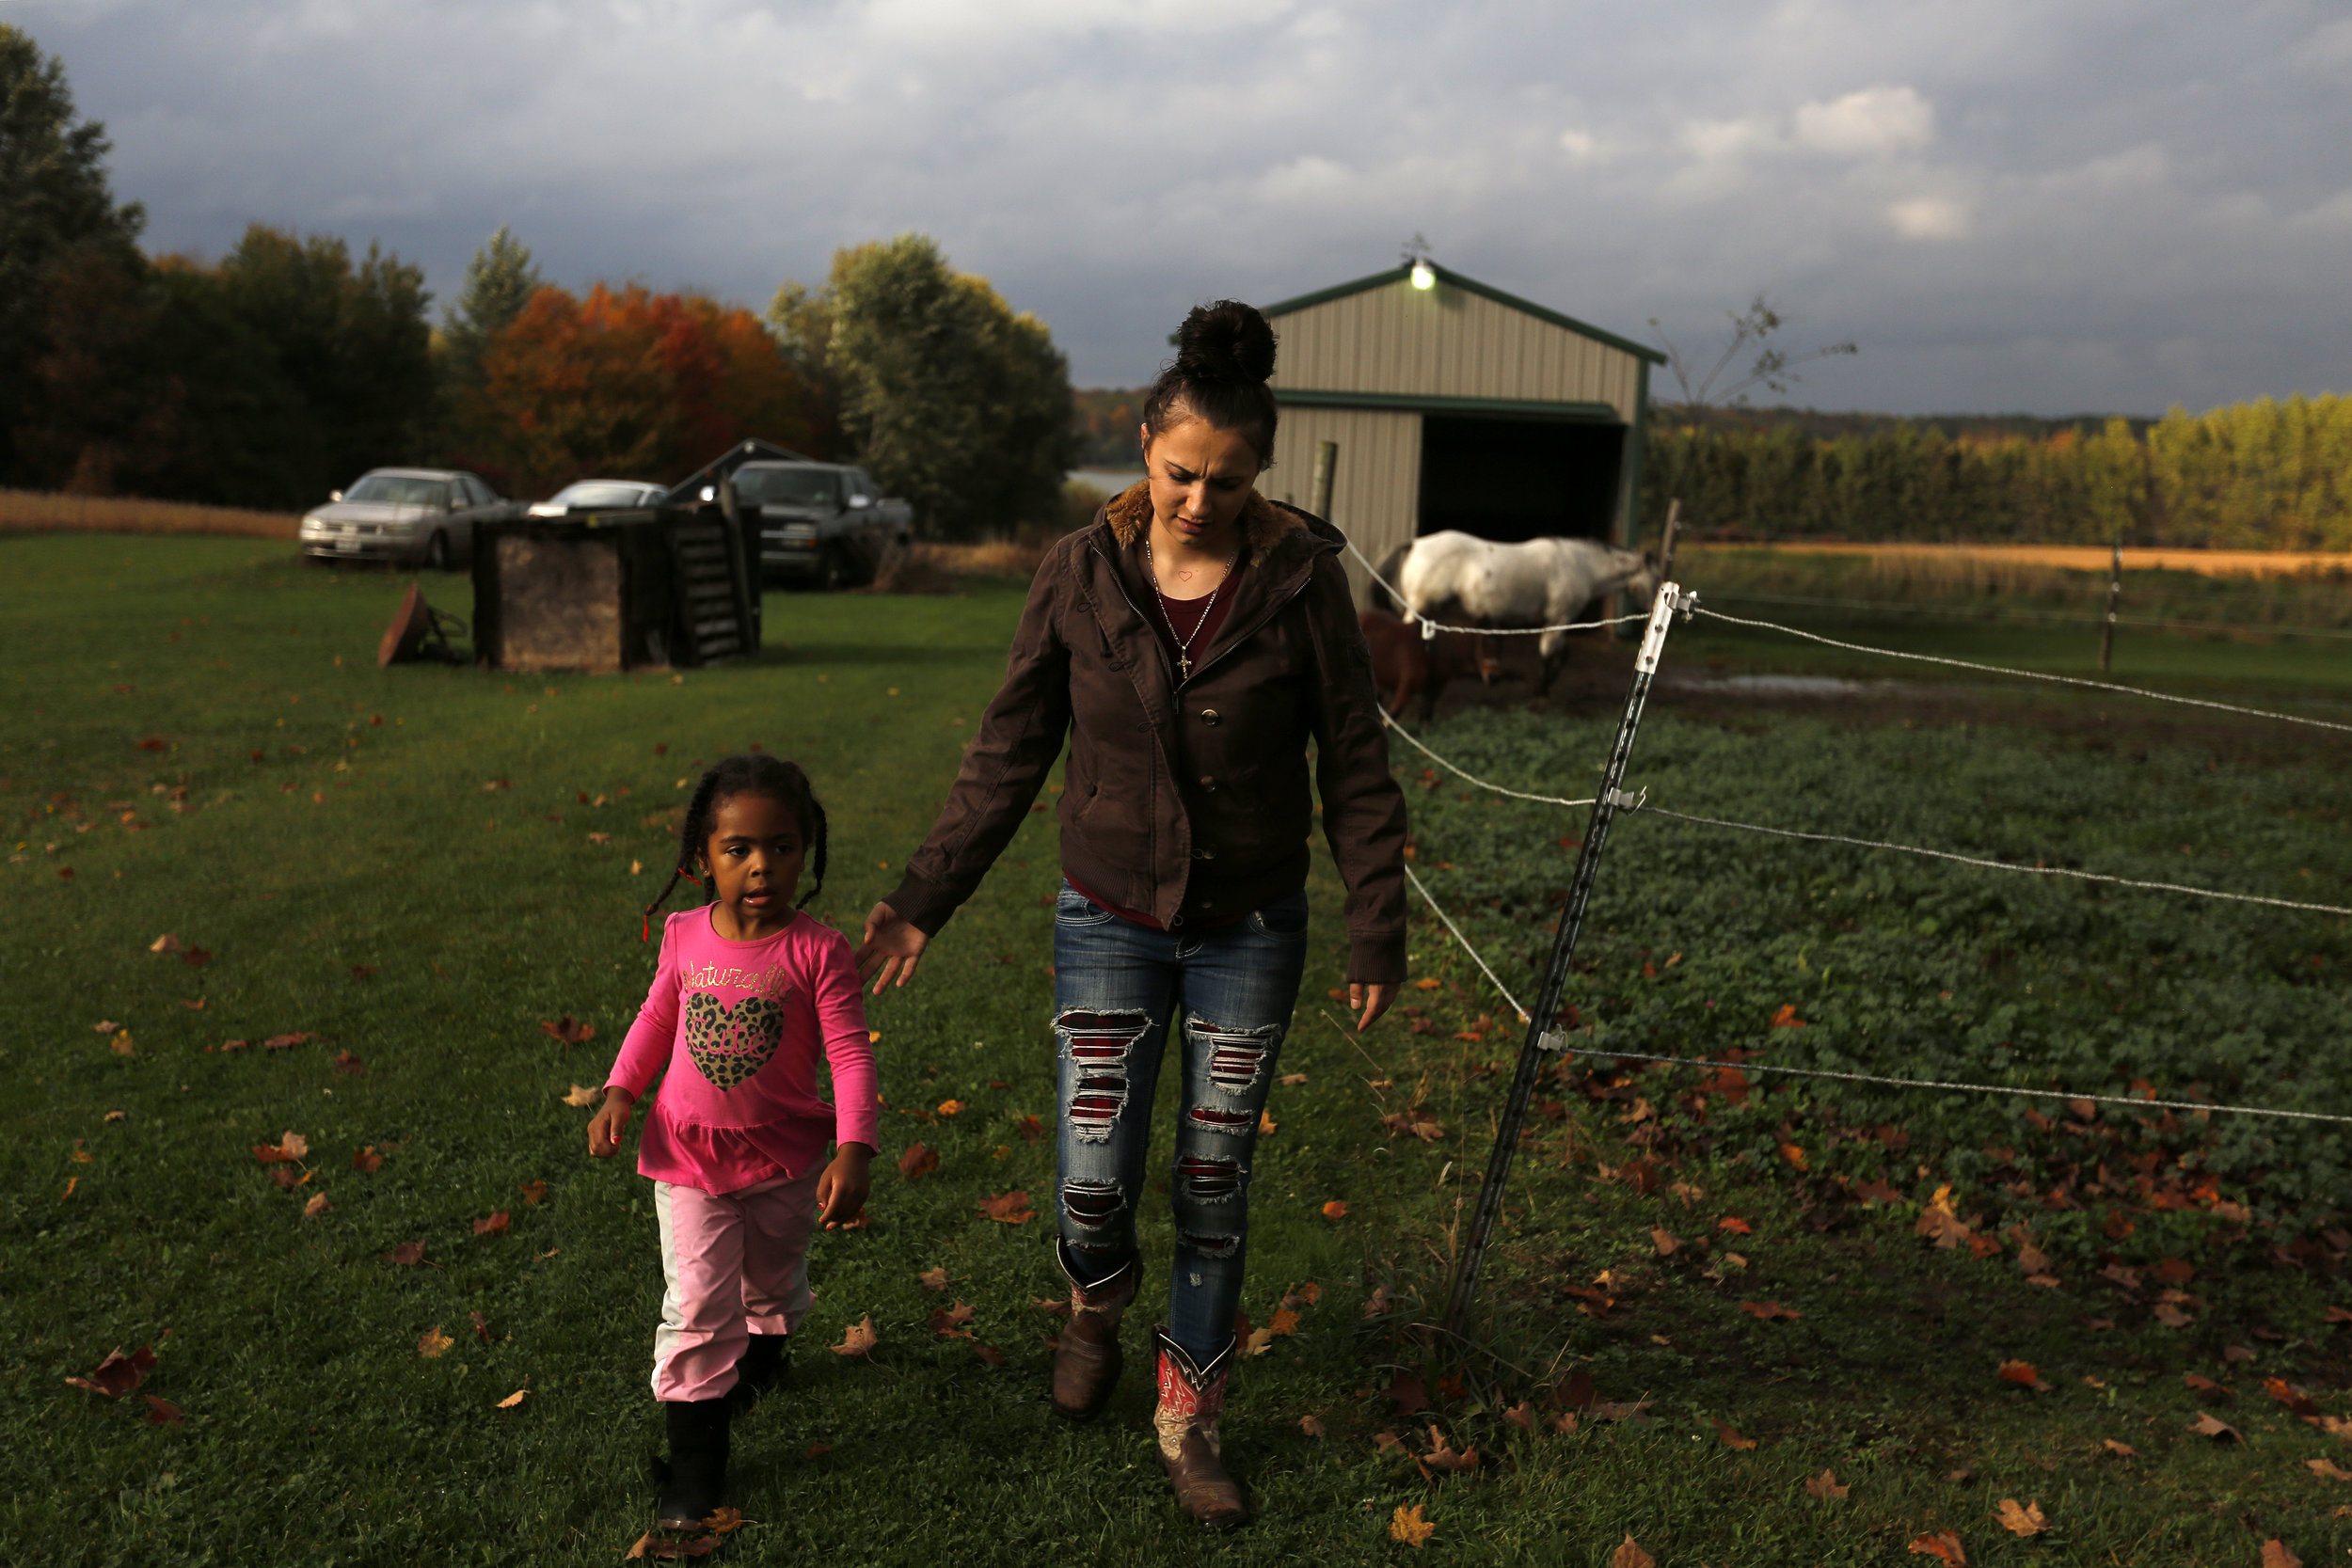 Moriah Rogowski lives in Green Bay but returns home to Mosinee to see her family and spend time on her family's property where she grew up. On a weekend trip in October, Rogowski took a friend's daughter Jehzelle Comic, 3,to ride a pony.